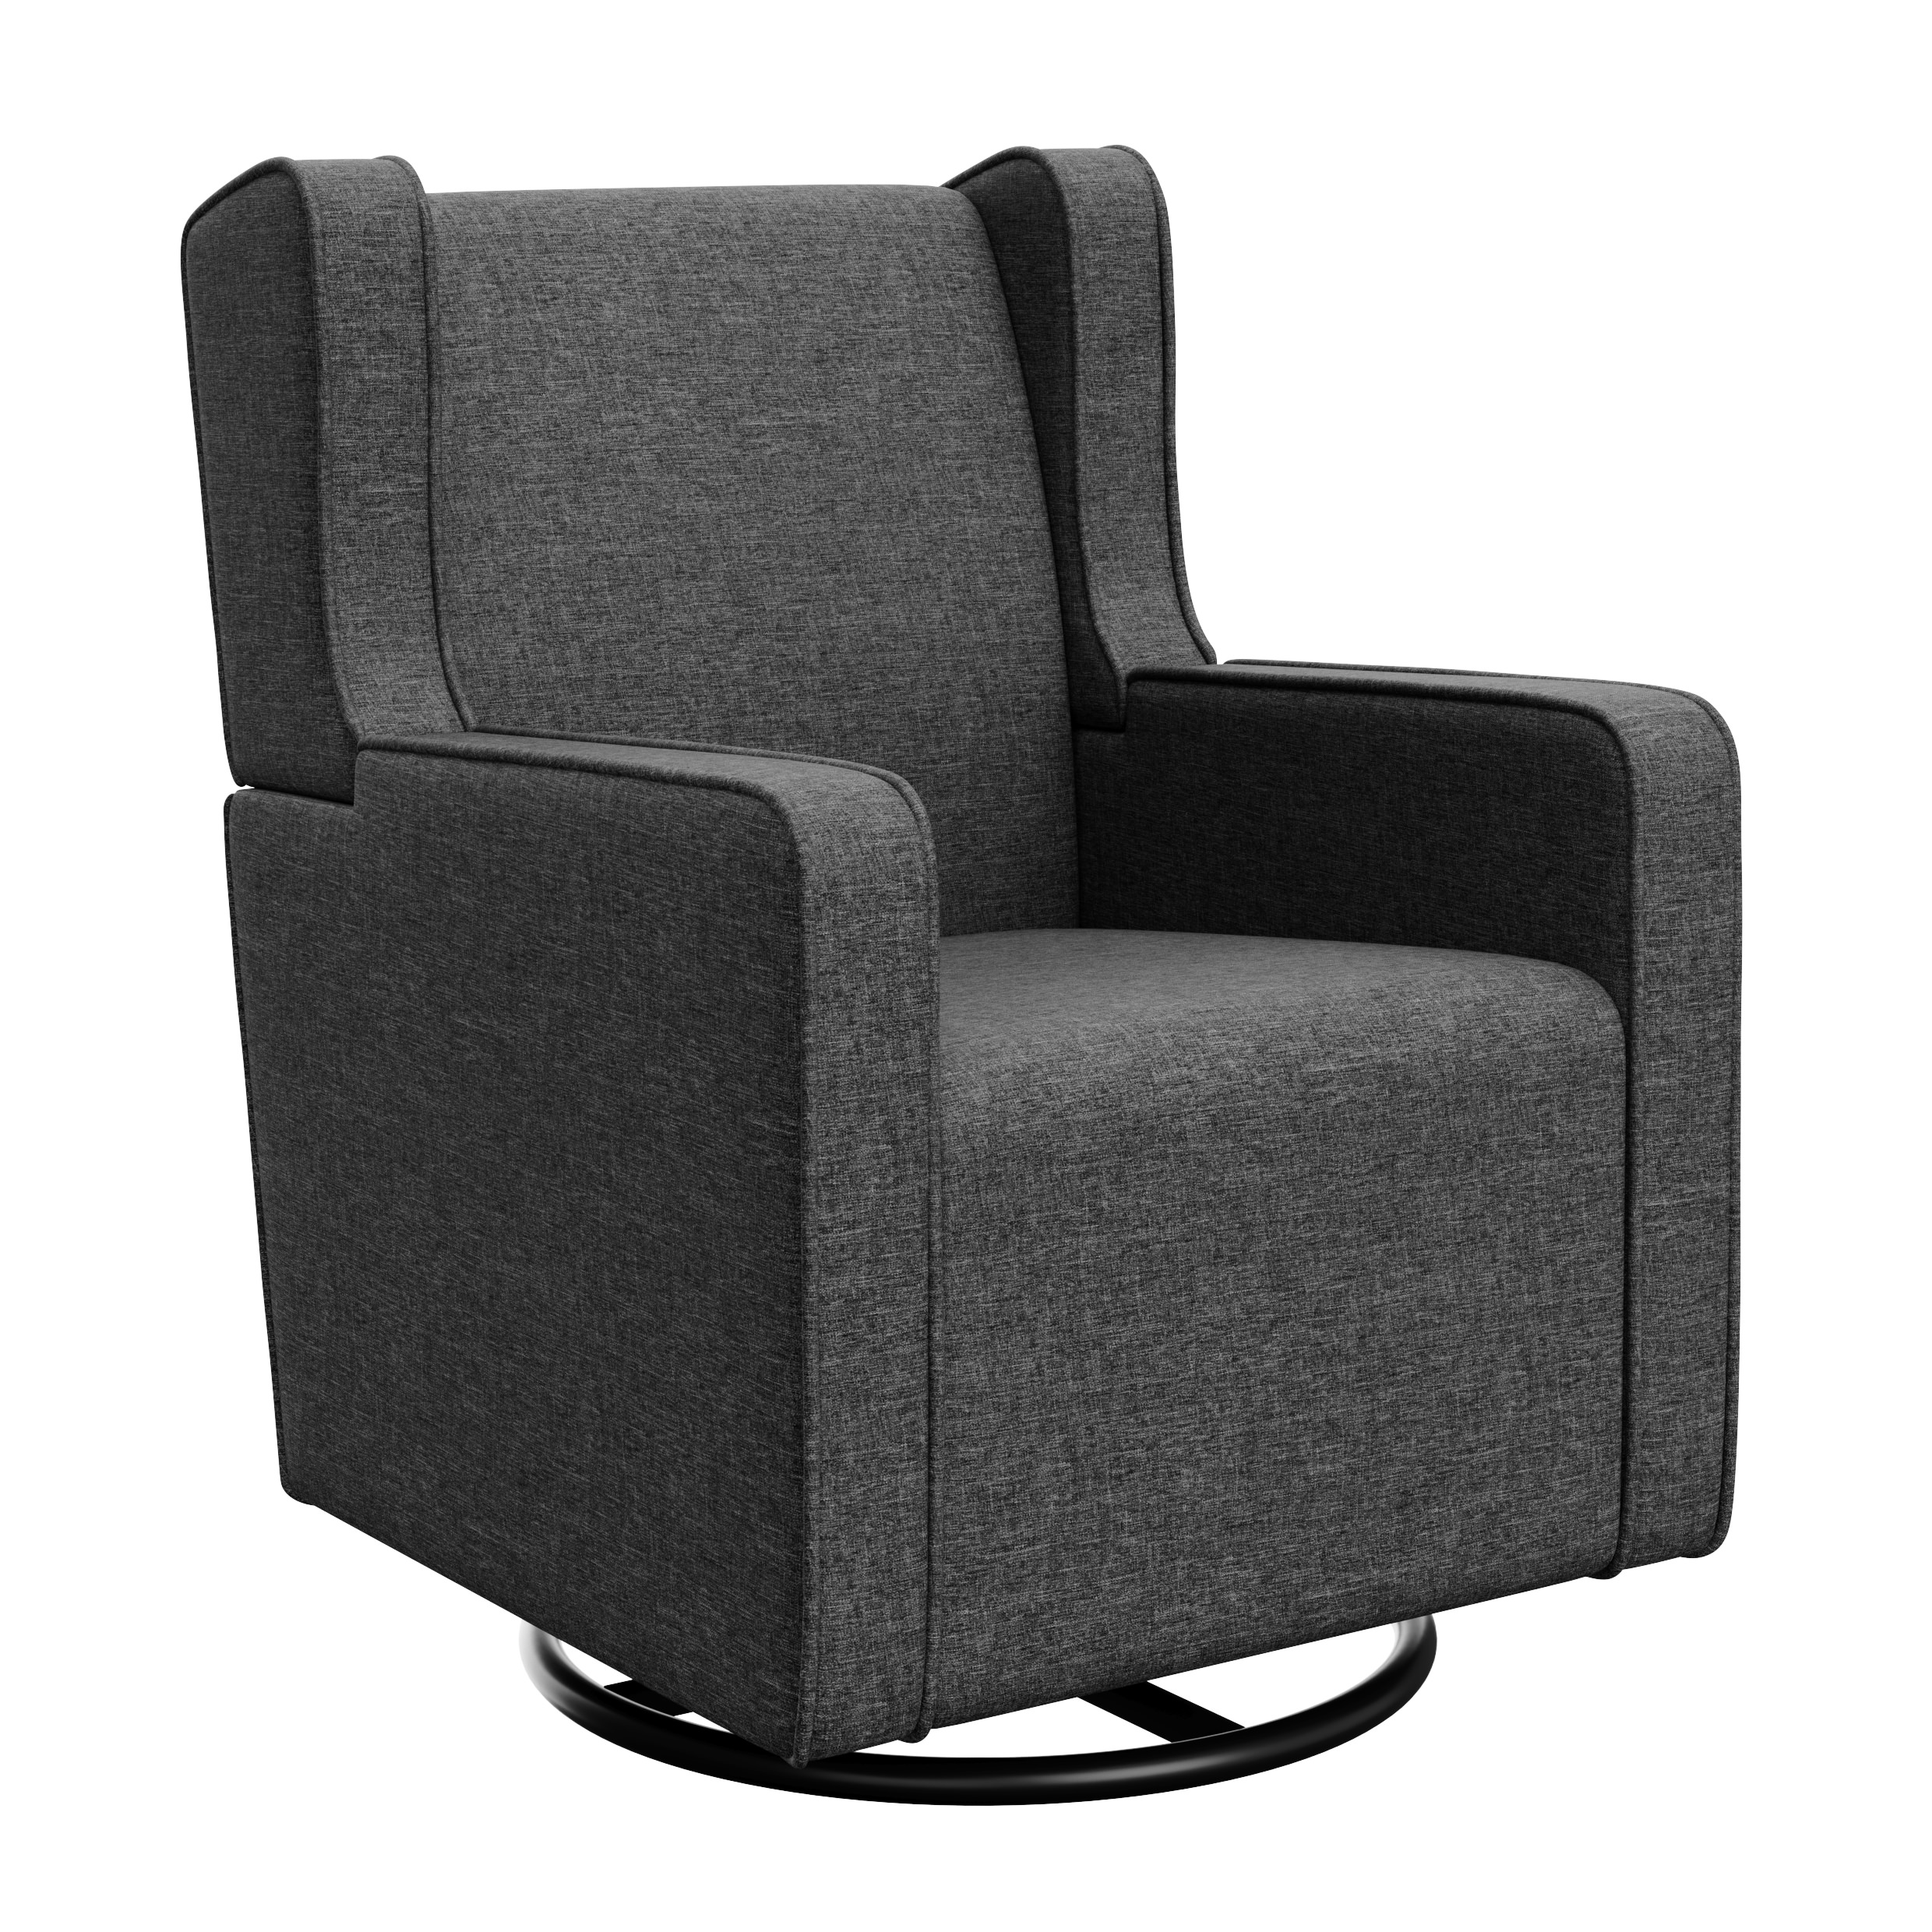 Graco Remi Upholstered Swivel Glider Horizon Gray by Graco